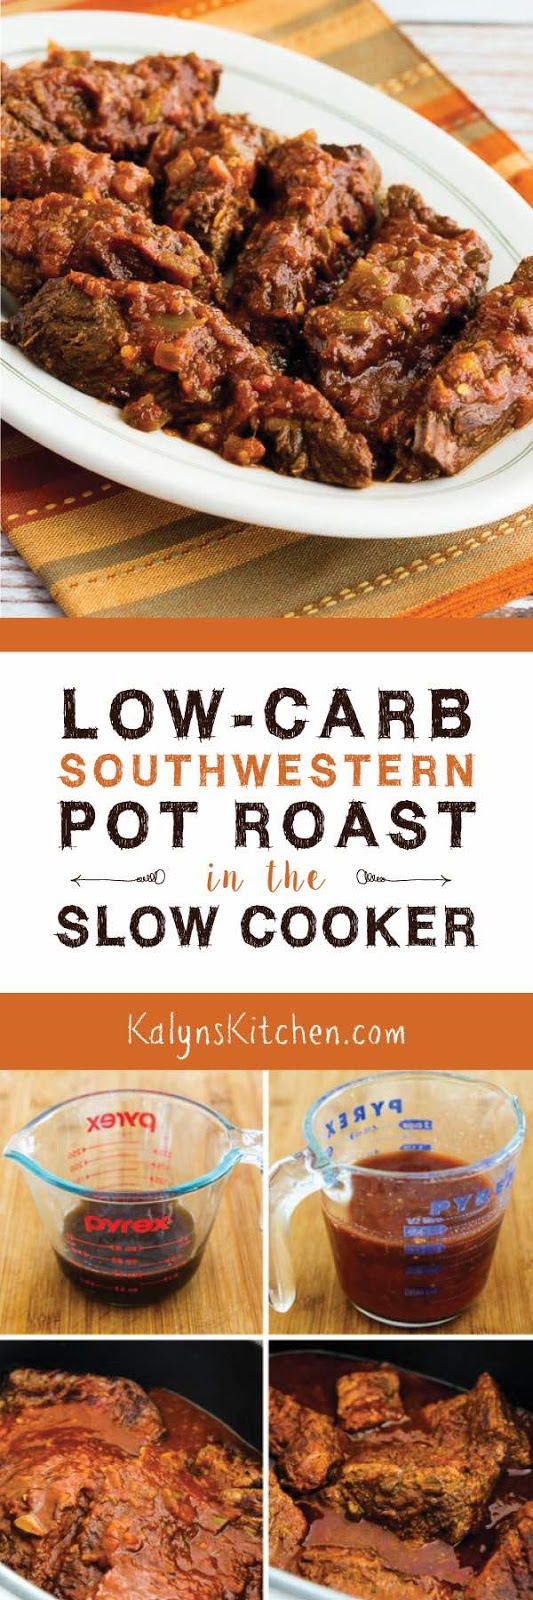 Kalyn's Kitchen®: Low-Carb Southwestern Pot Roast in the Slow Cooker